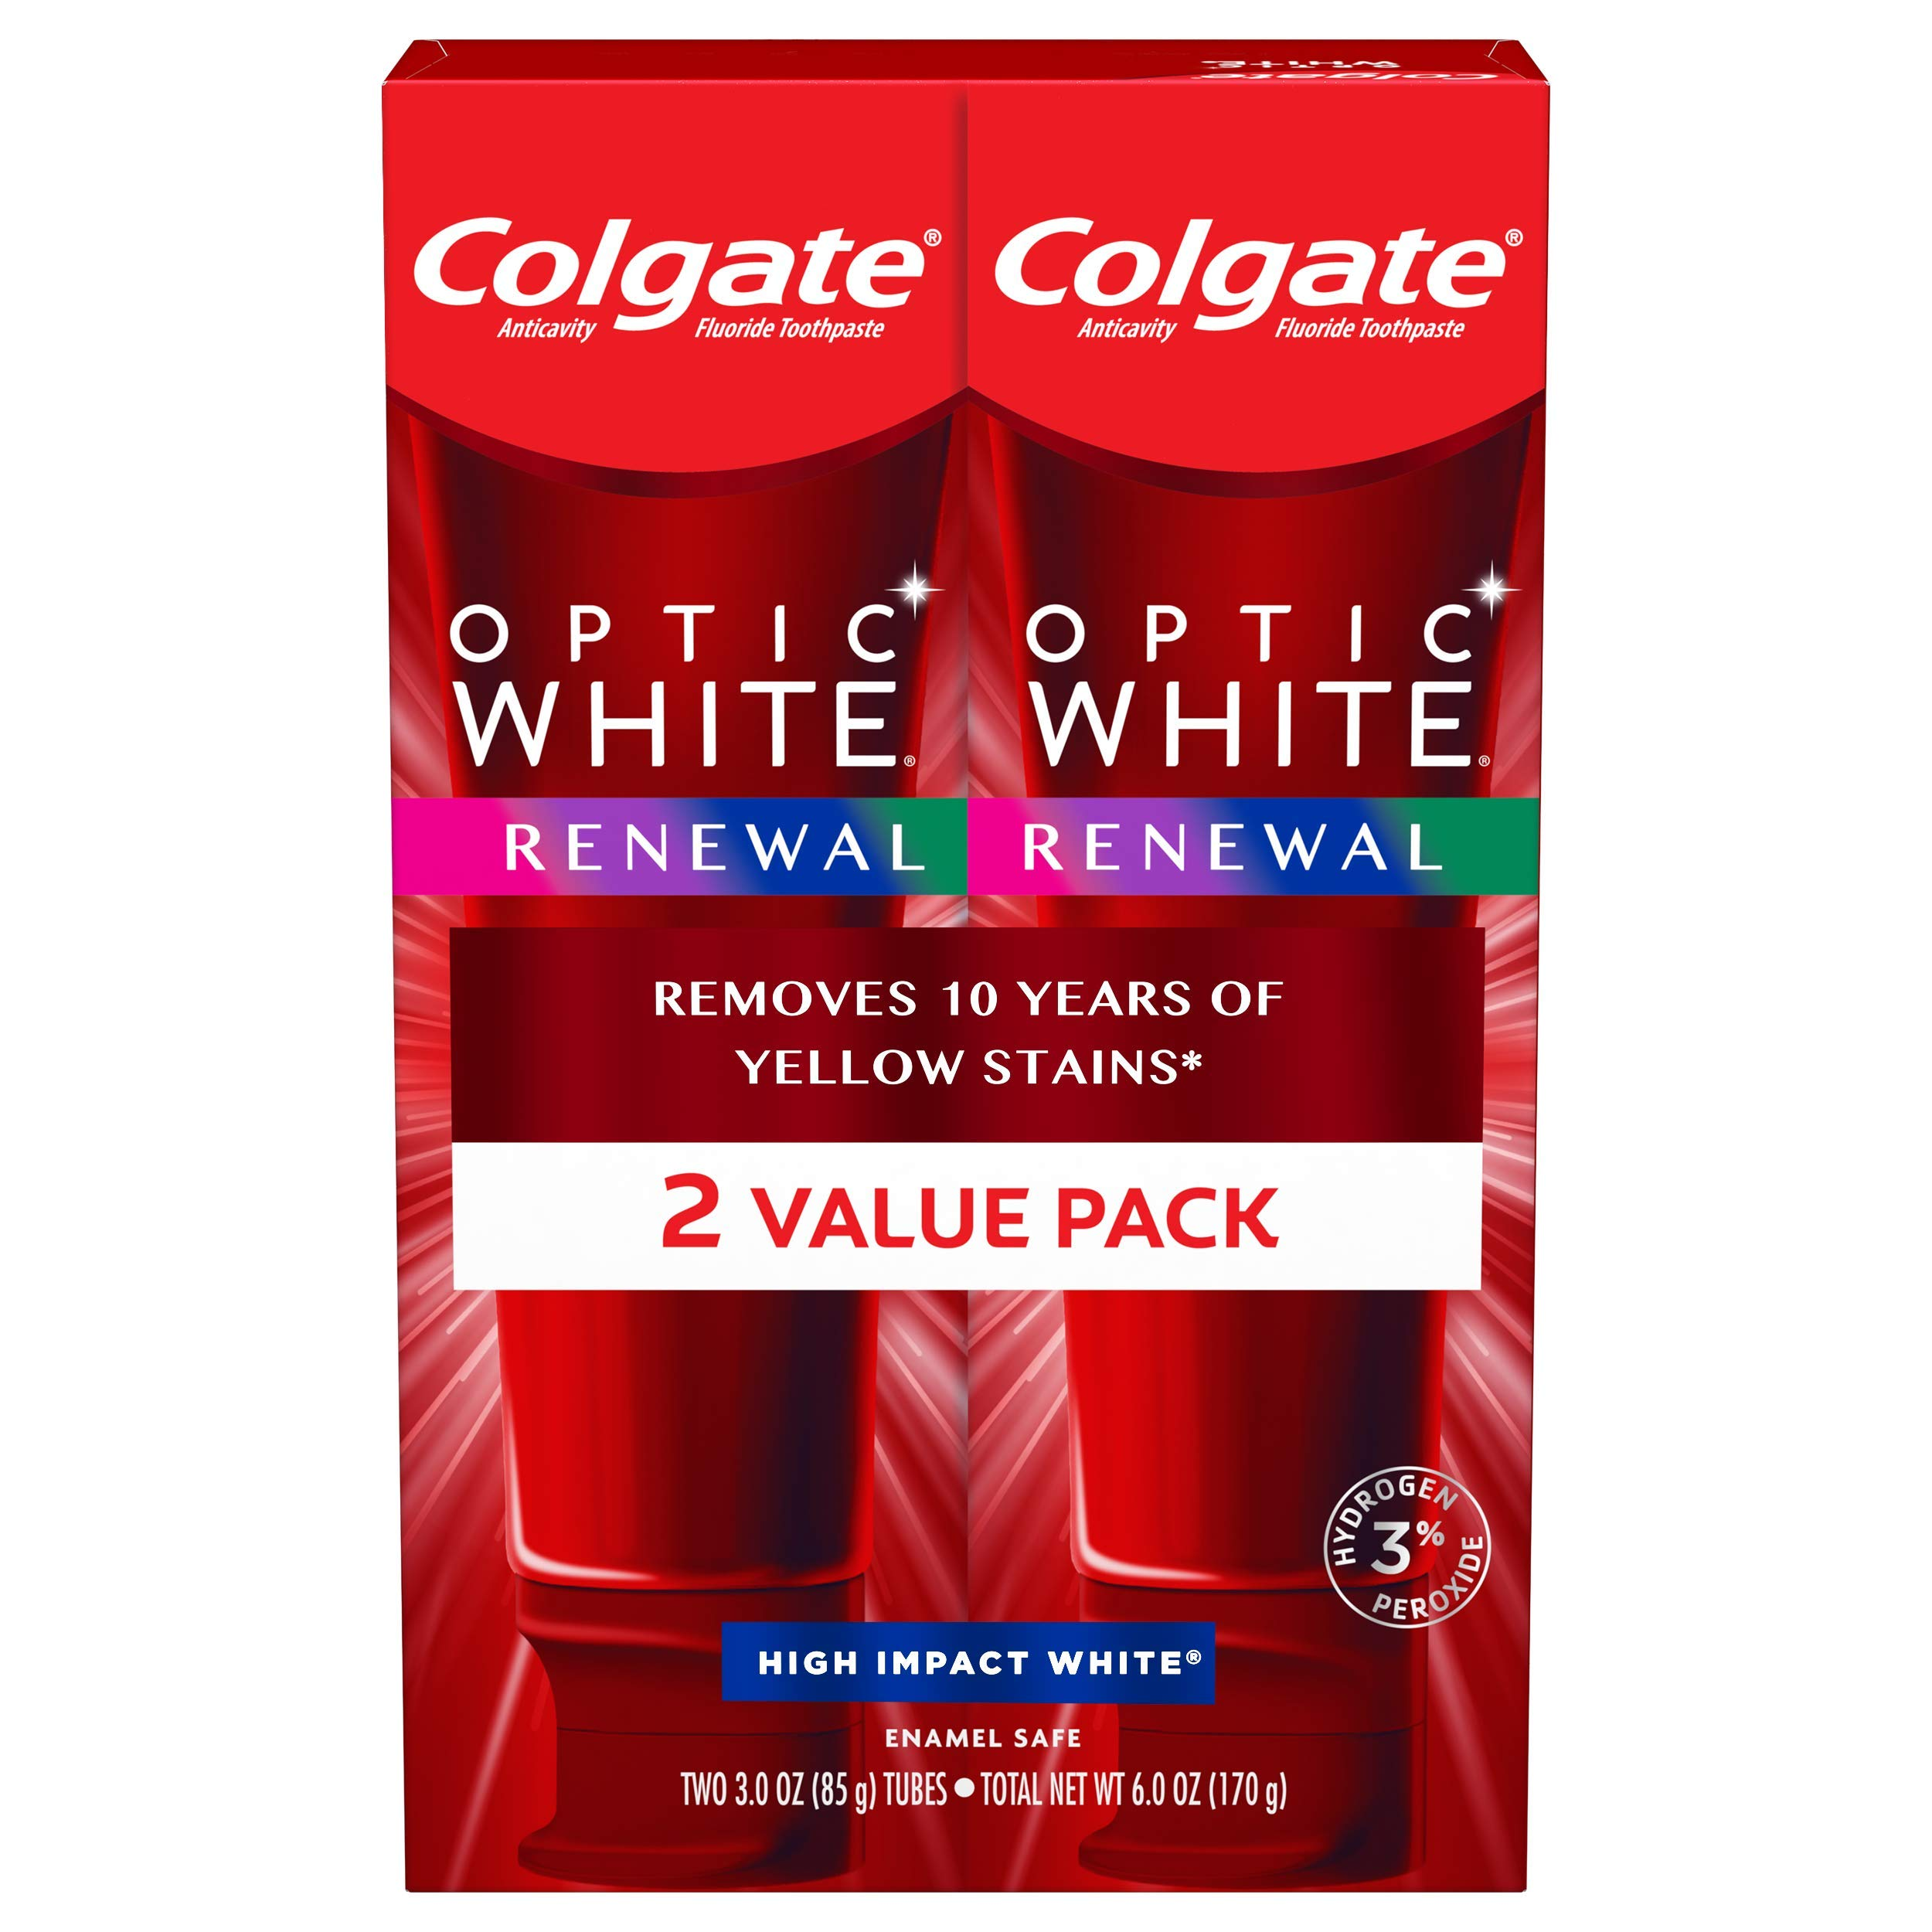 Colgate Optic White Renewal Teeth Whitening Toothpaste with Fluoride, 3% Hydrogen Peroxide, High Impact White - 3 ounce (2 Pack)